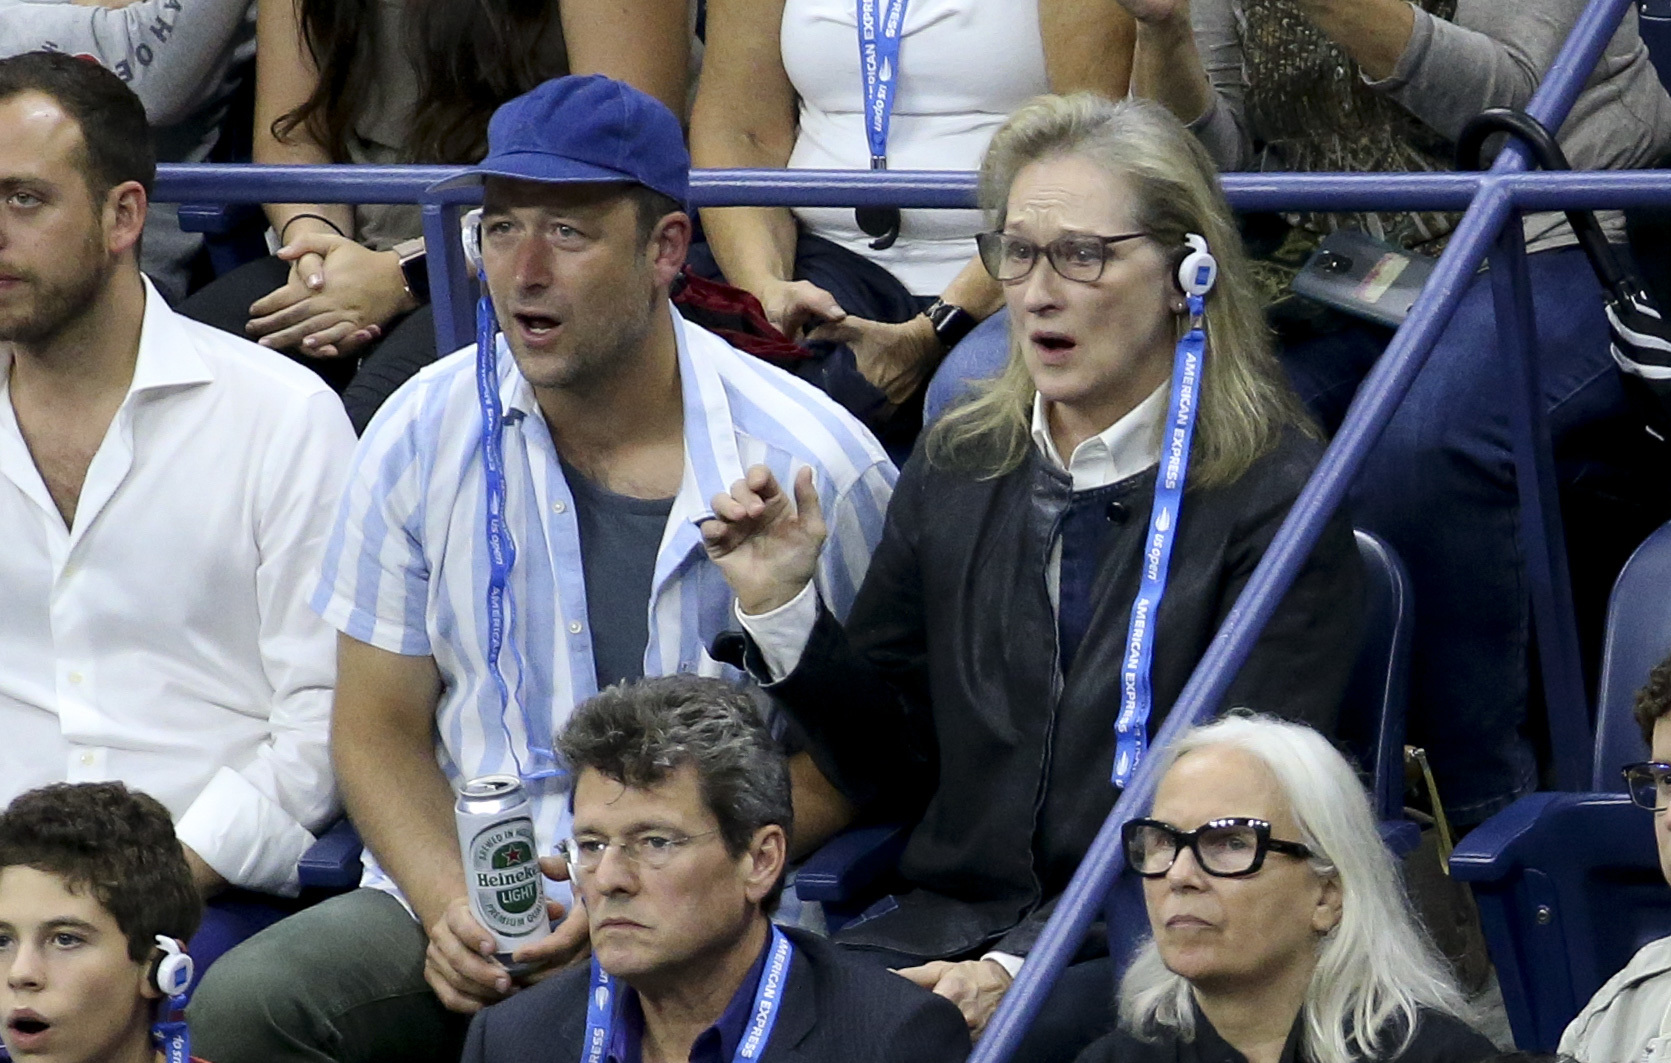 Meryl Streep attends the US Open in New York City on Sept. 9, 2018.